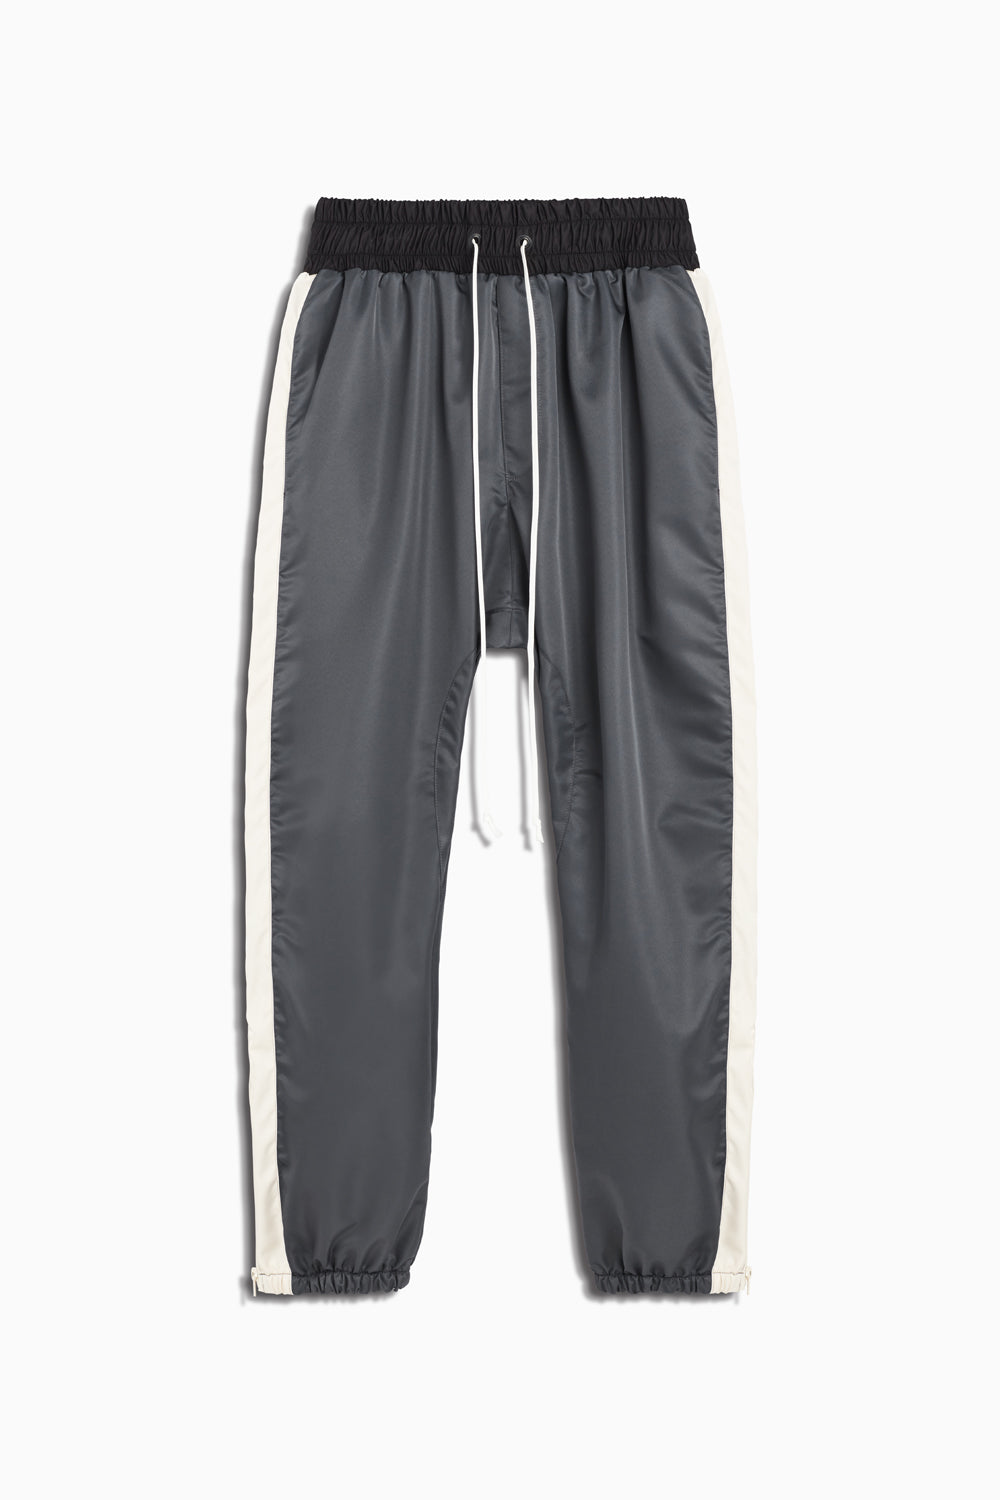 parachute track pant in pewter/ivory by daniel patrick